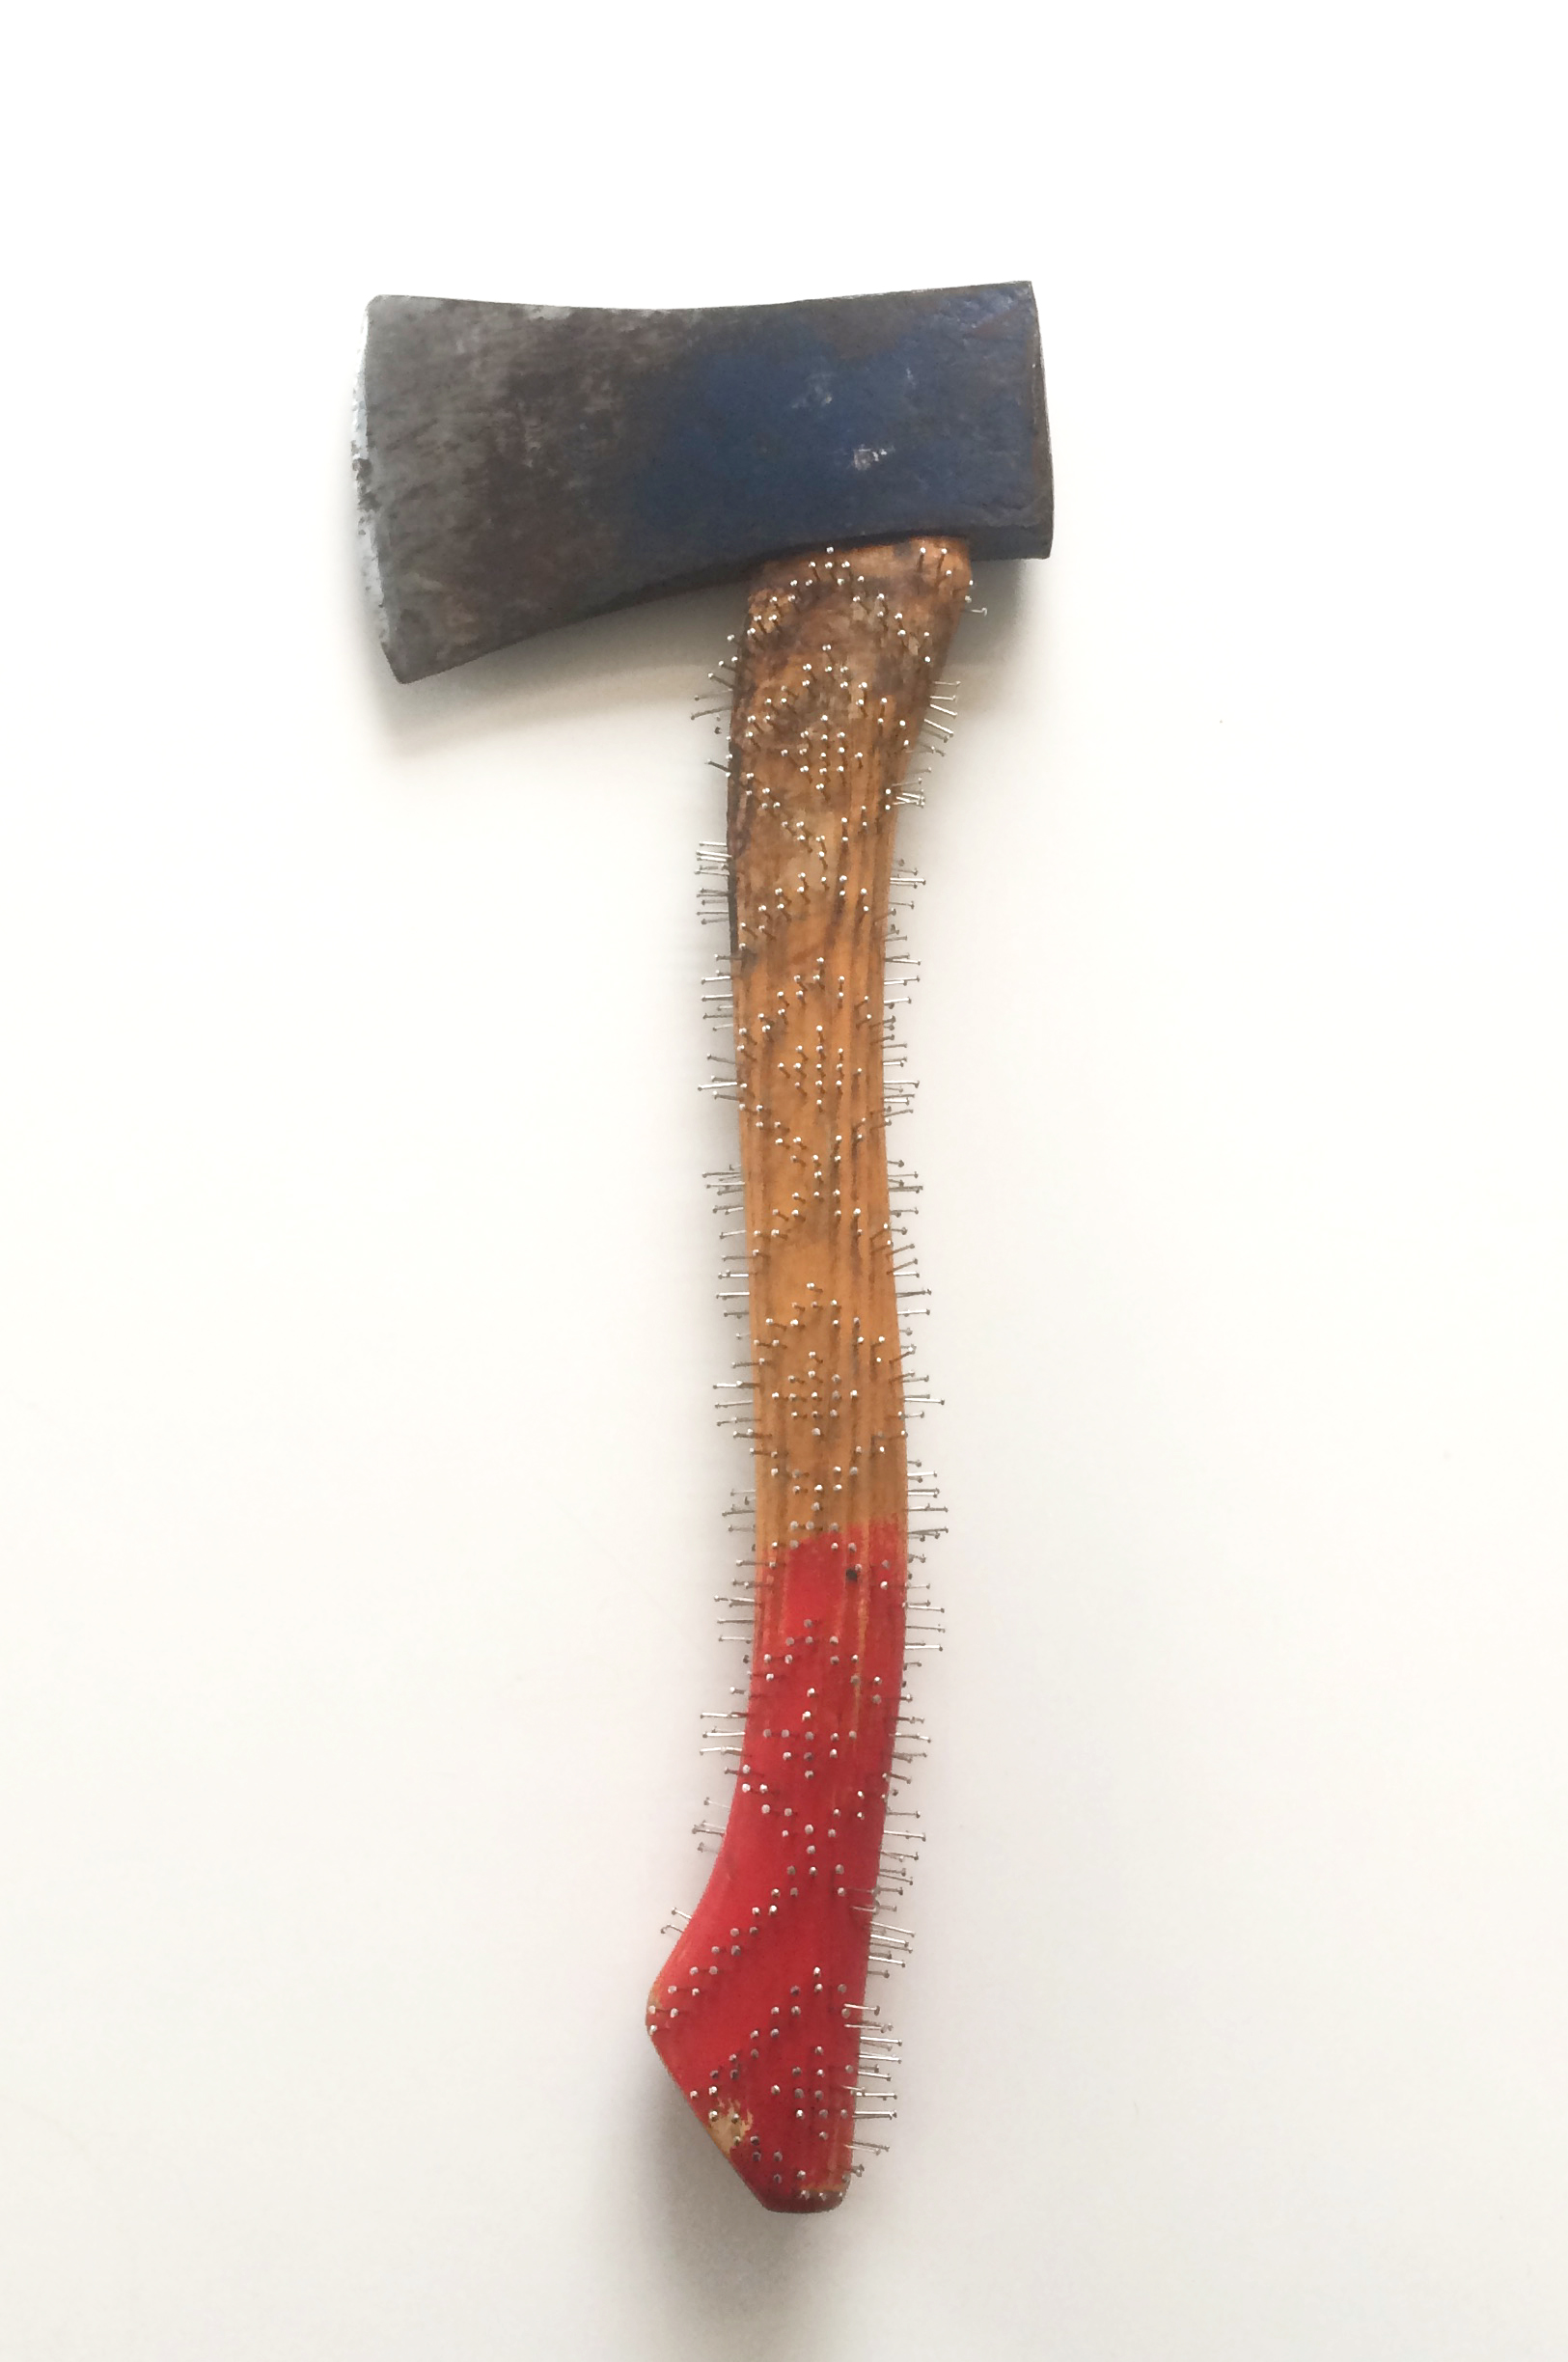 red end  2018   found axe, pins 13 x 19 inches